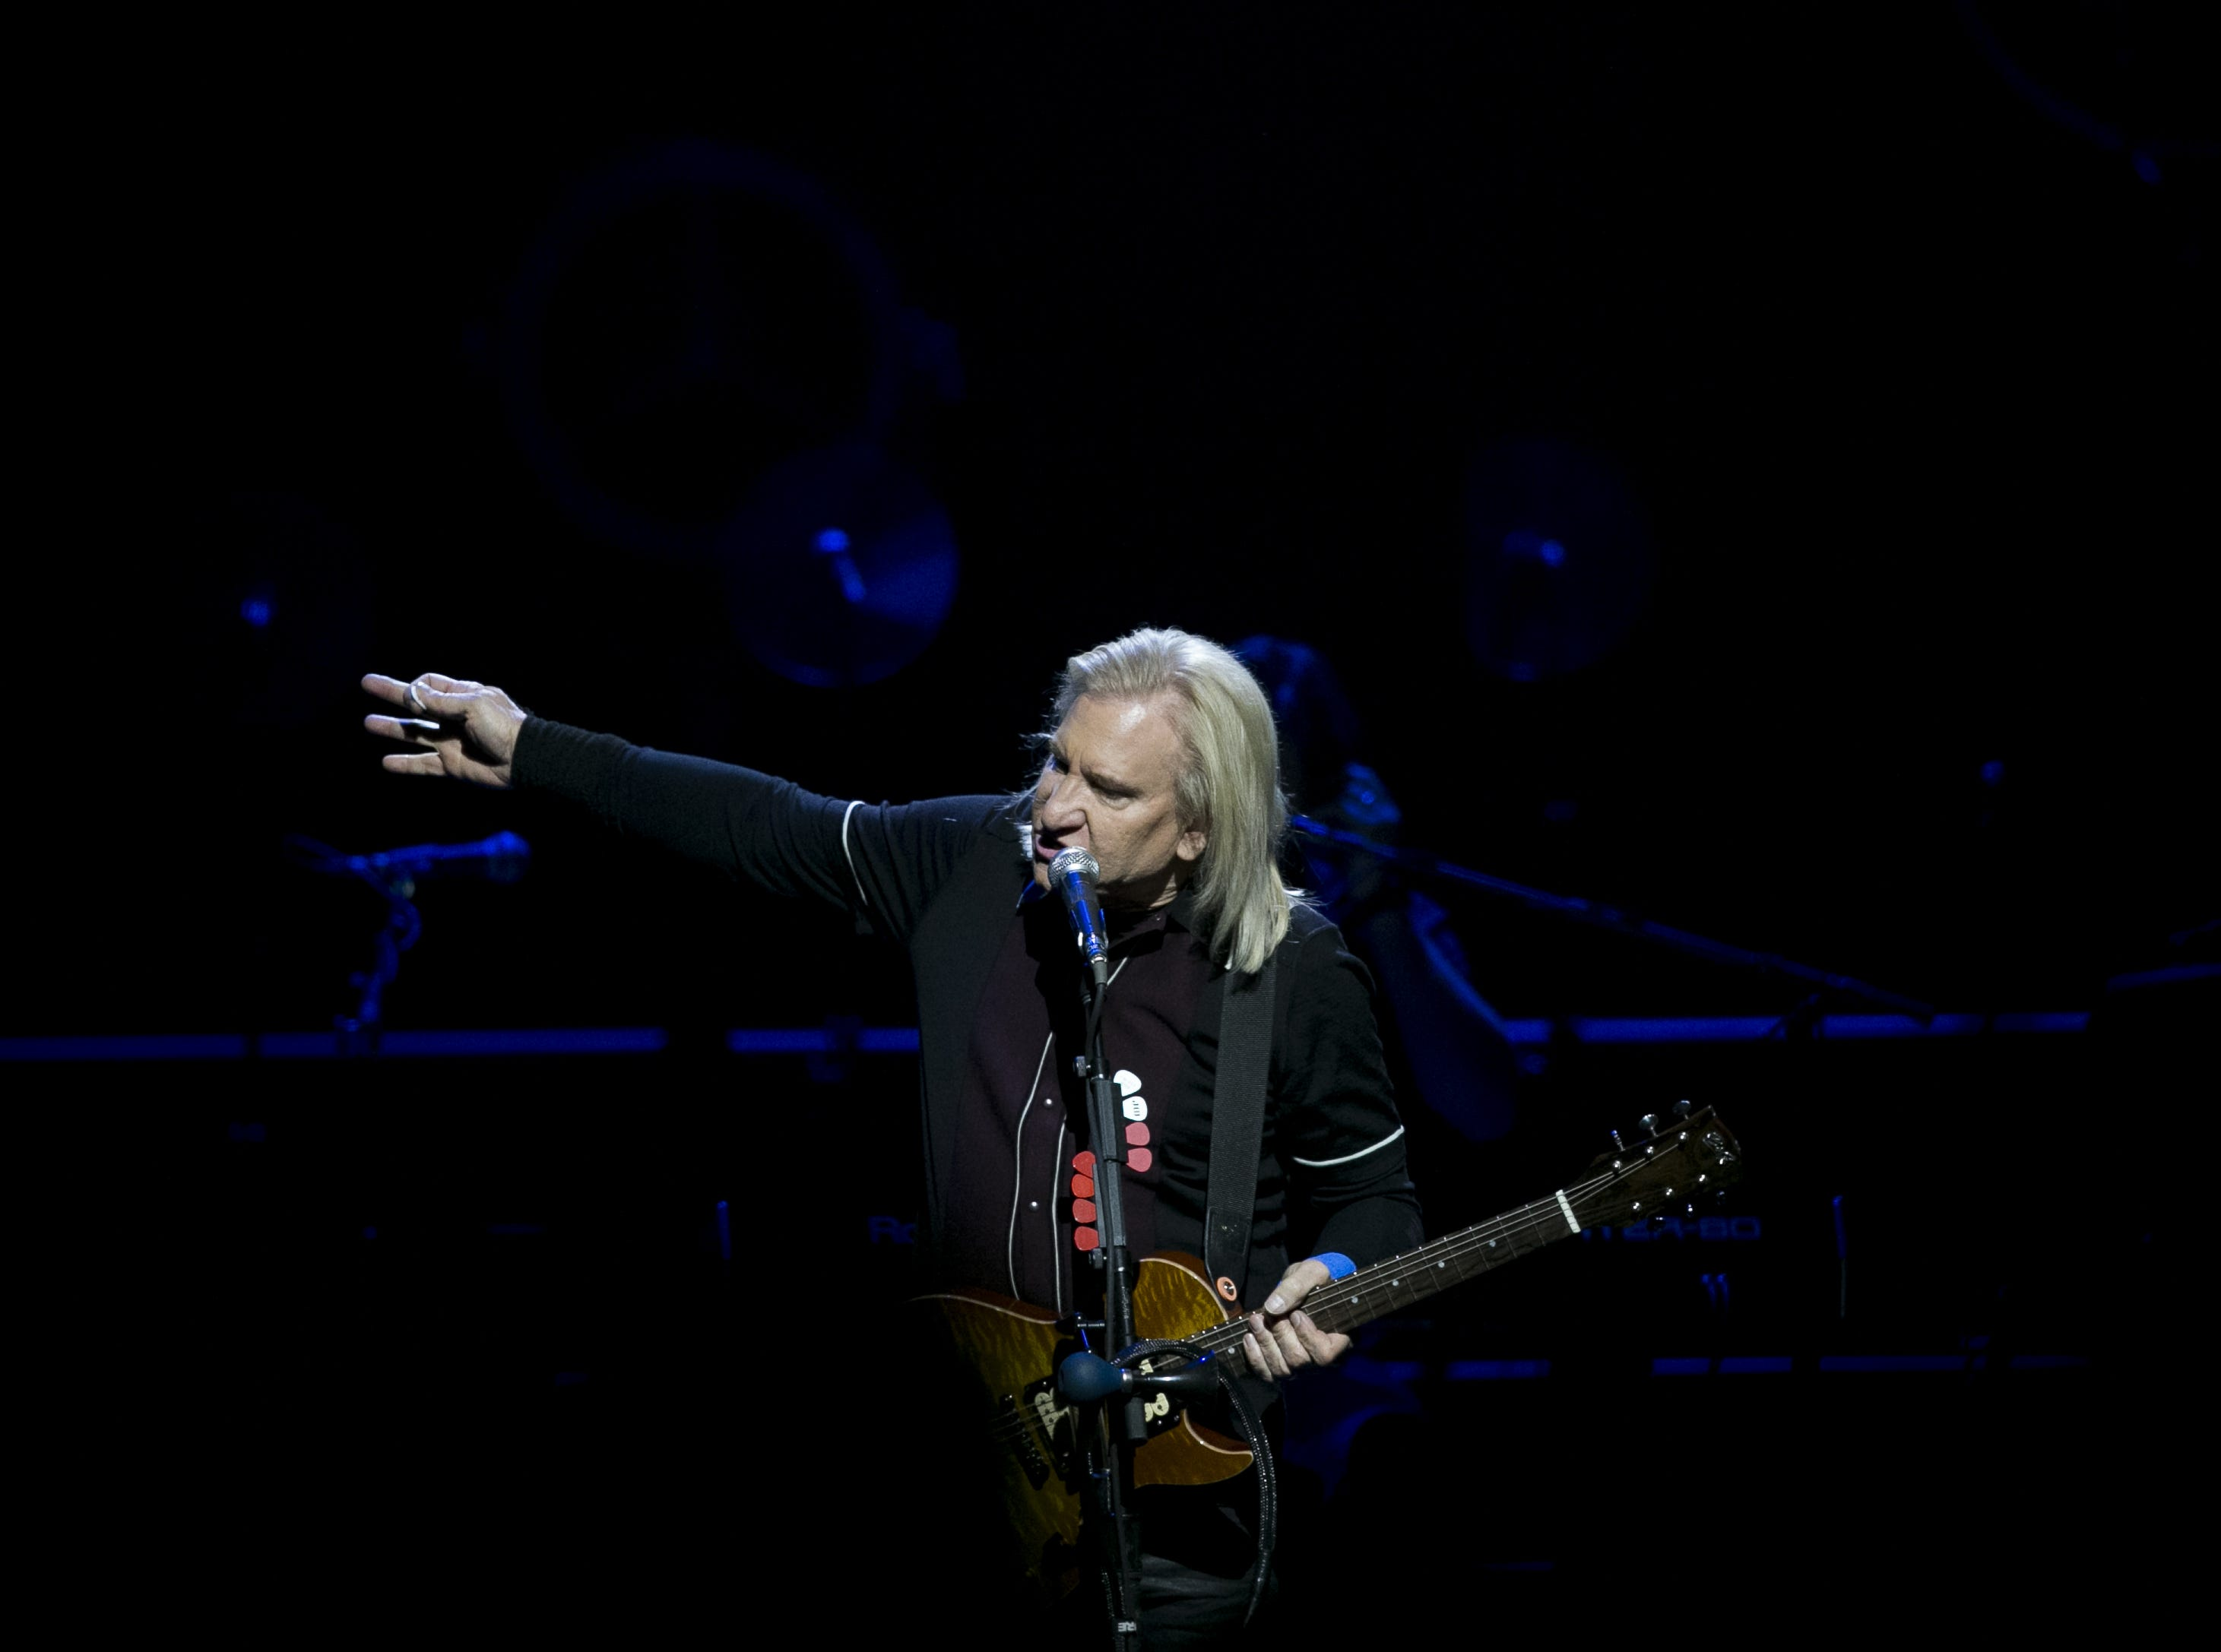 Joe Walsh performs with the Eagles at Talking Stick Resort Arena in Phoenix on Sat. Sep. 8, 2018.